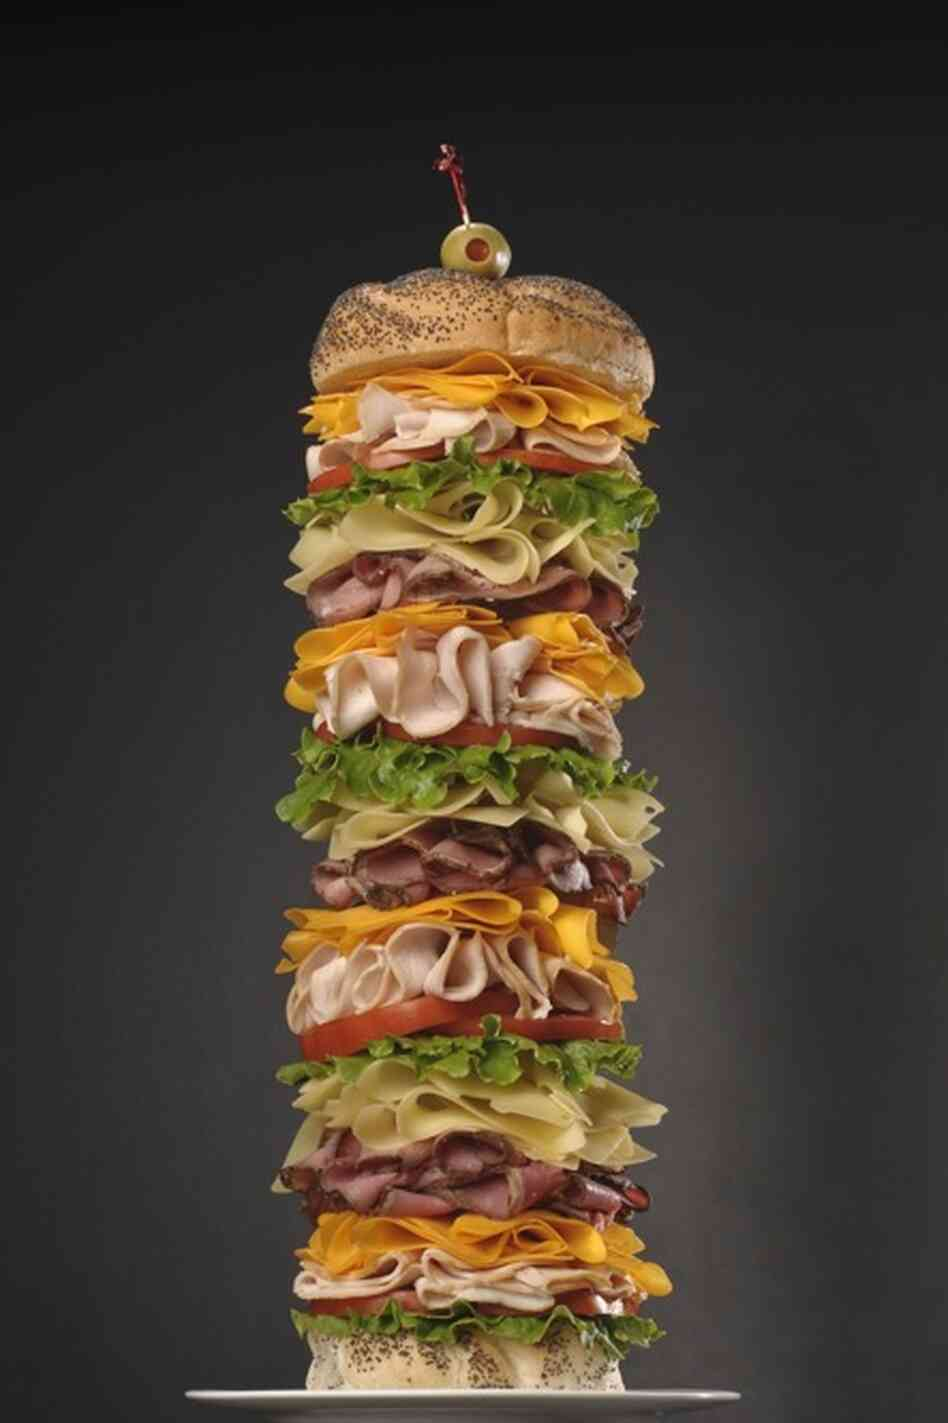 Building a tall sandwich involves some sleight-of-hand — and some hardware. The